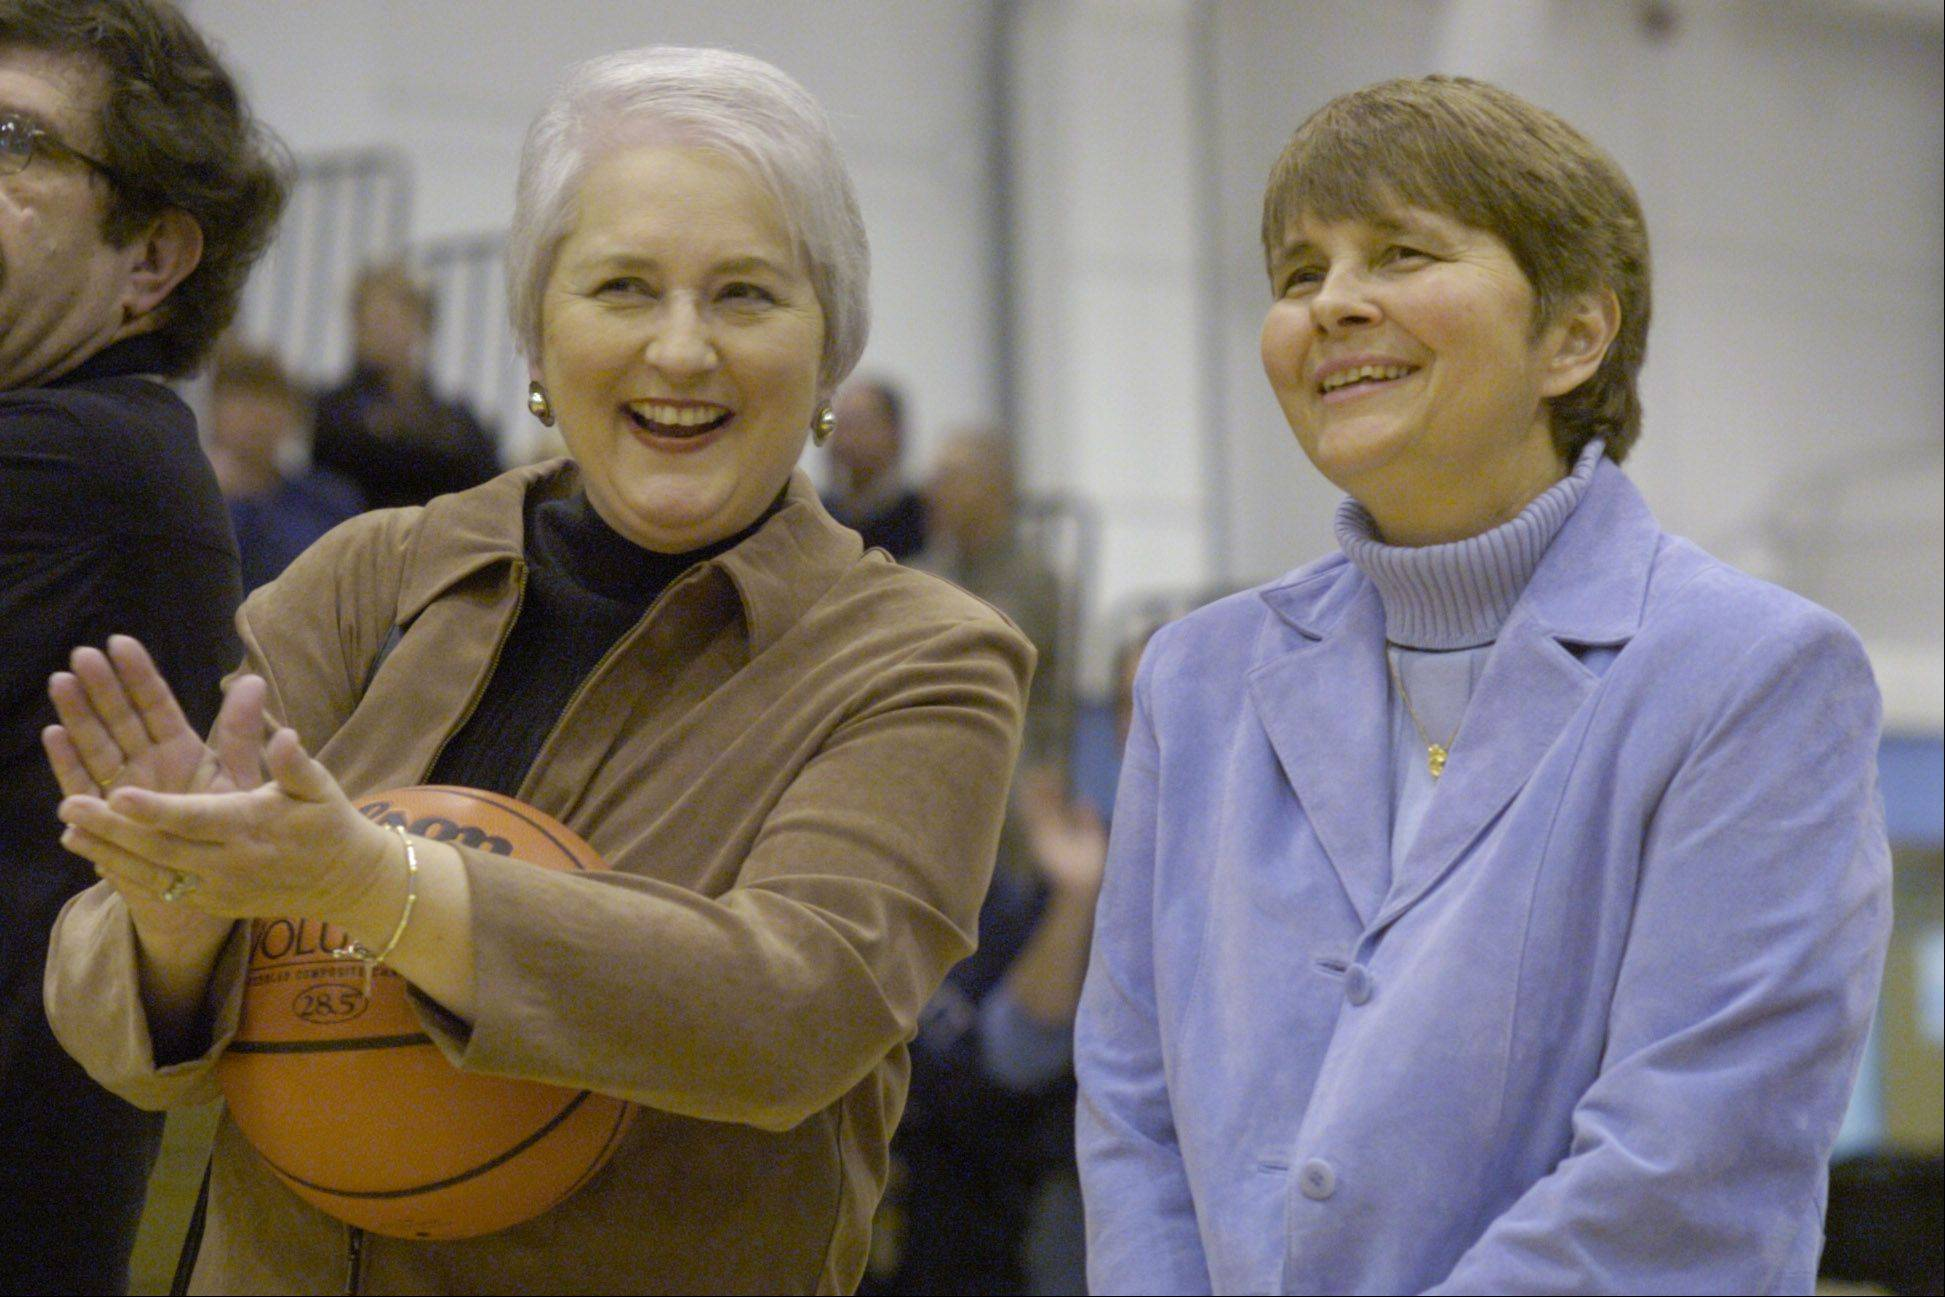 Jean Walker, right, is joined by her sister, Diane Carley, during a ceremony dedicating the Prospect field house in Walker's name in 2007.